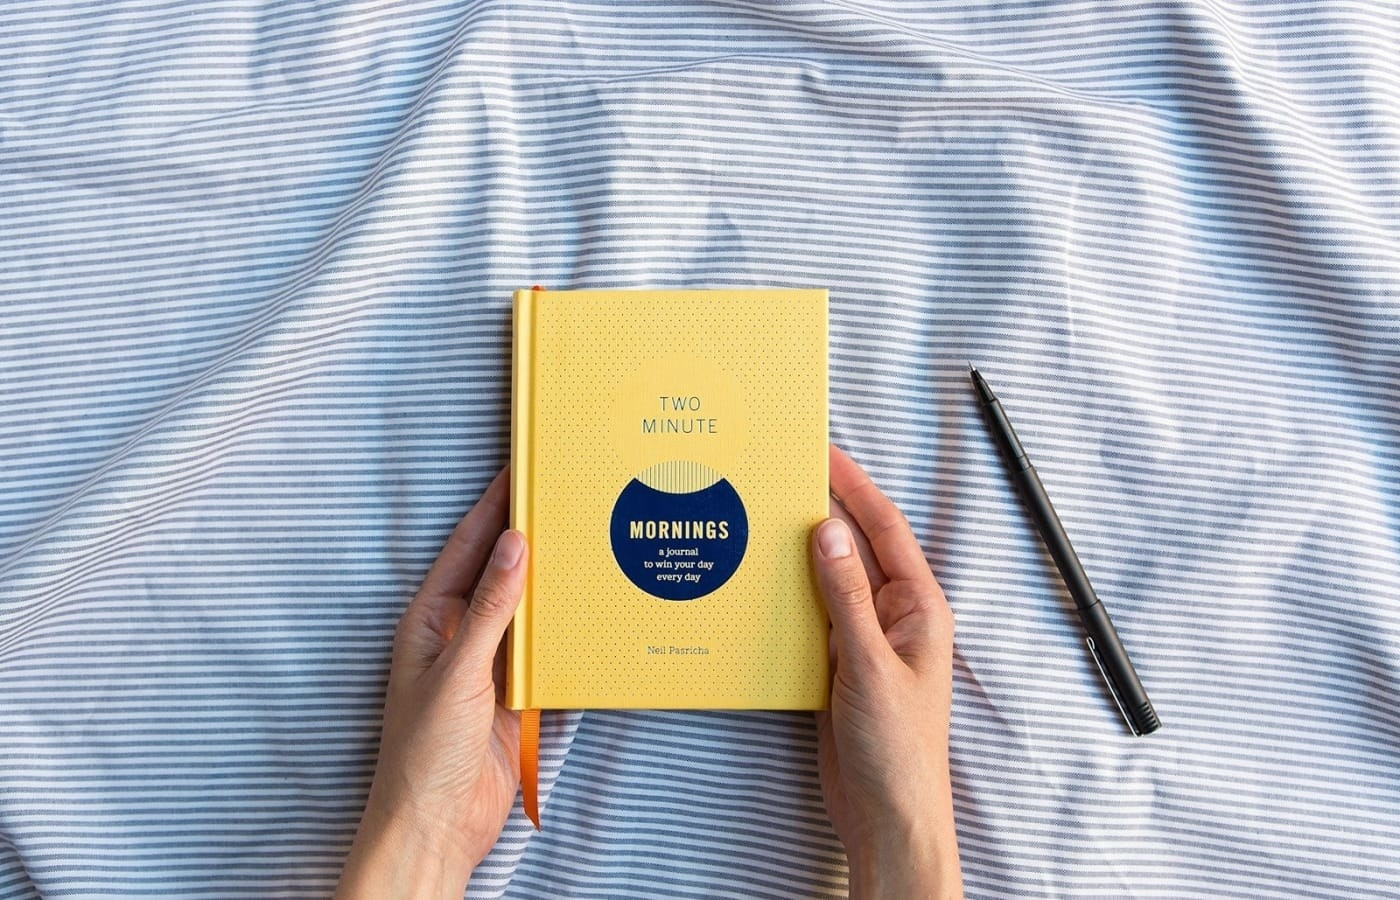 Hands holding the small yellow book